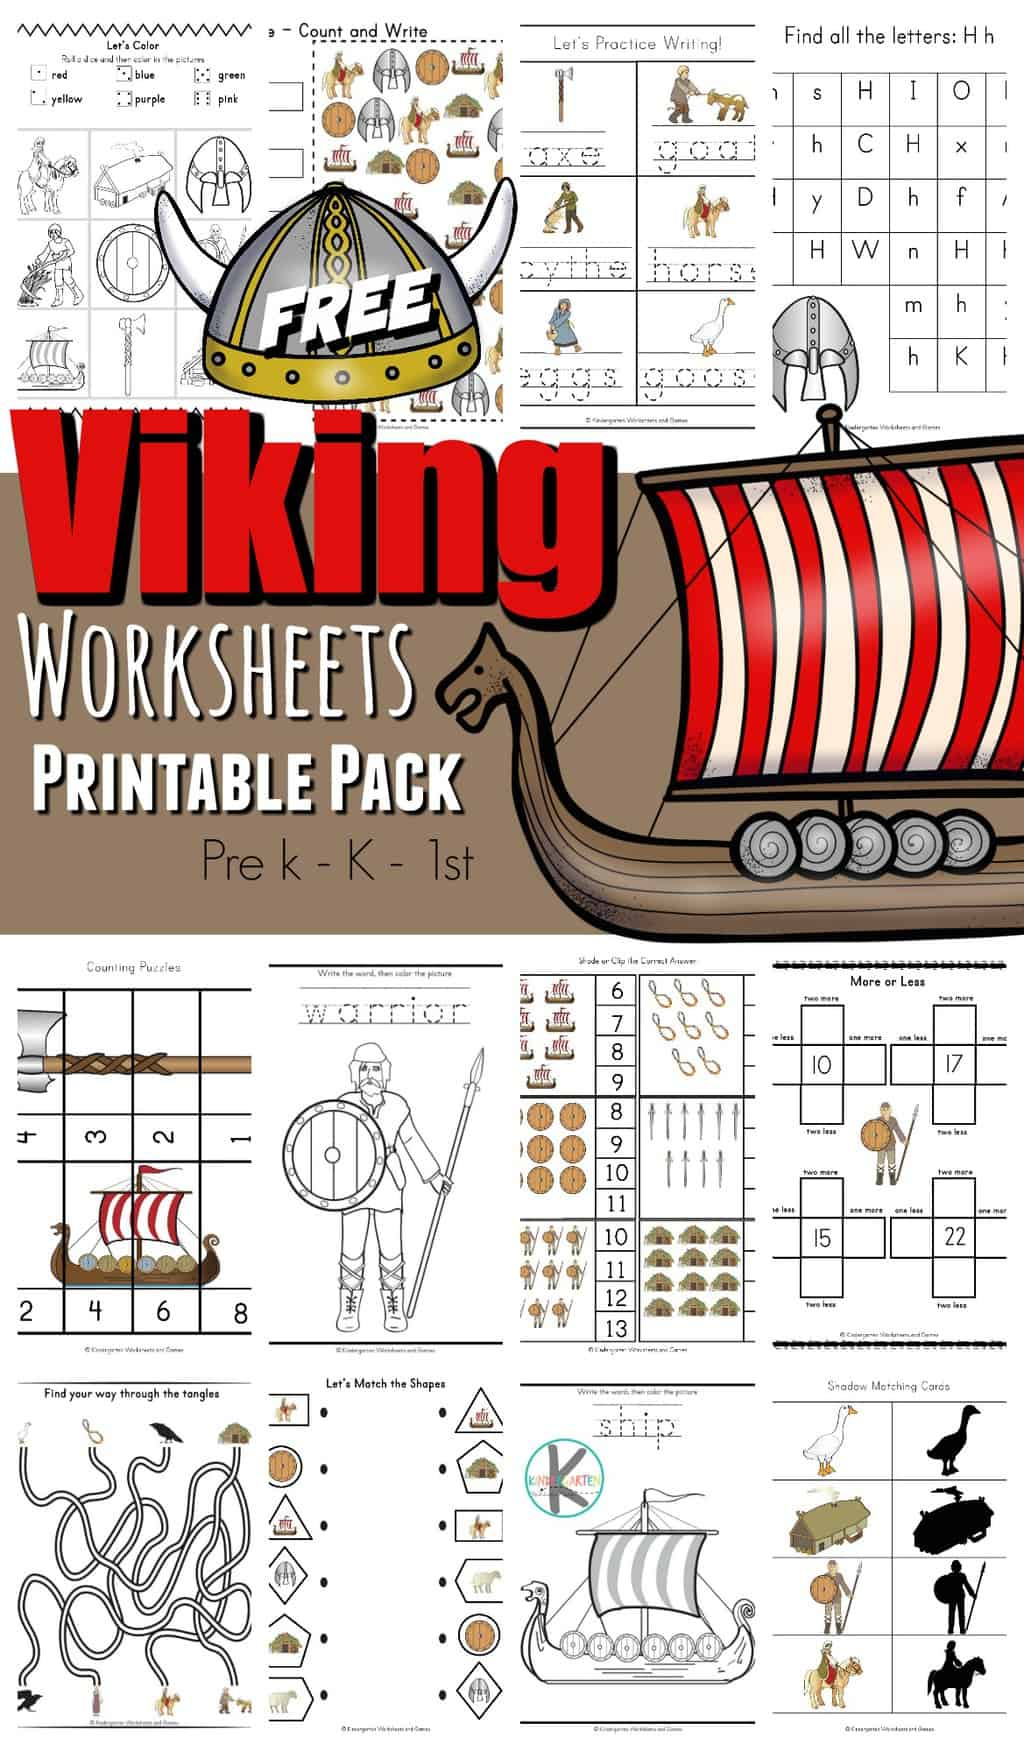 Viking Worksheets Printable Pack